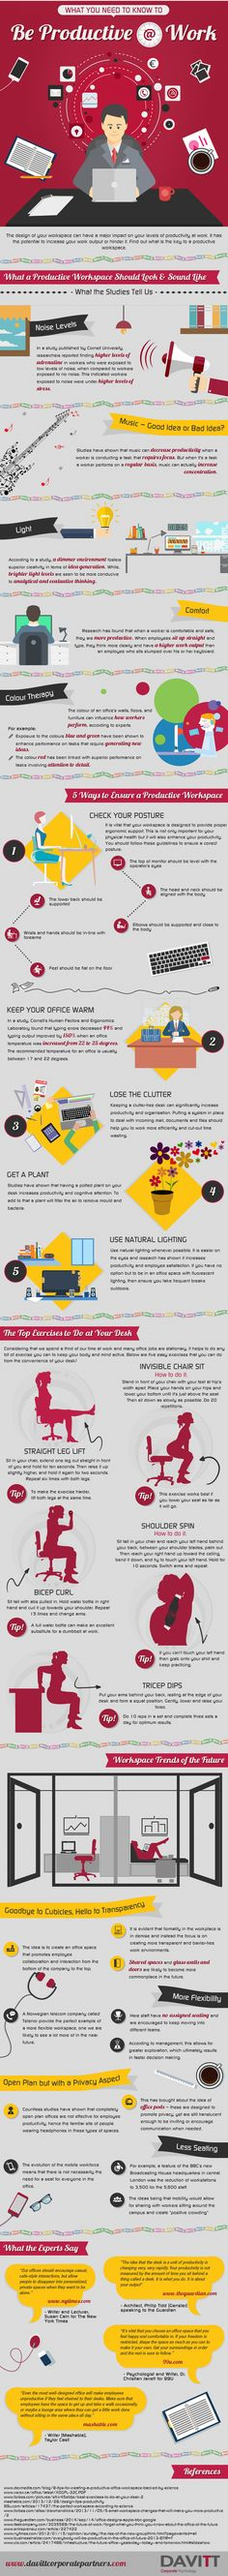 Infographic - What You Need to Know to Be Productive at Work